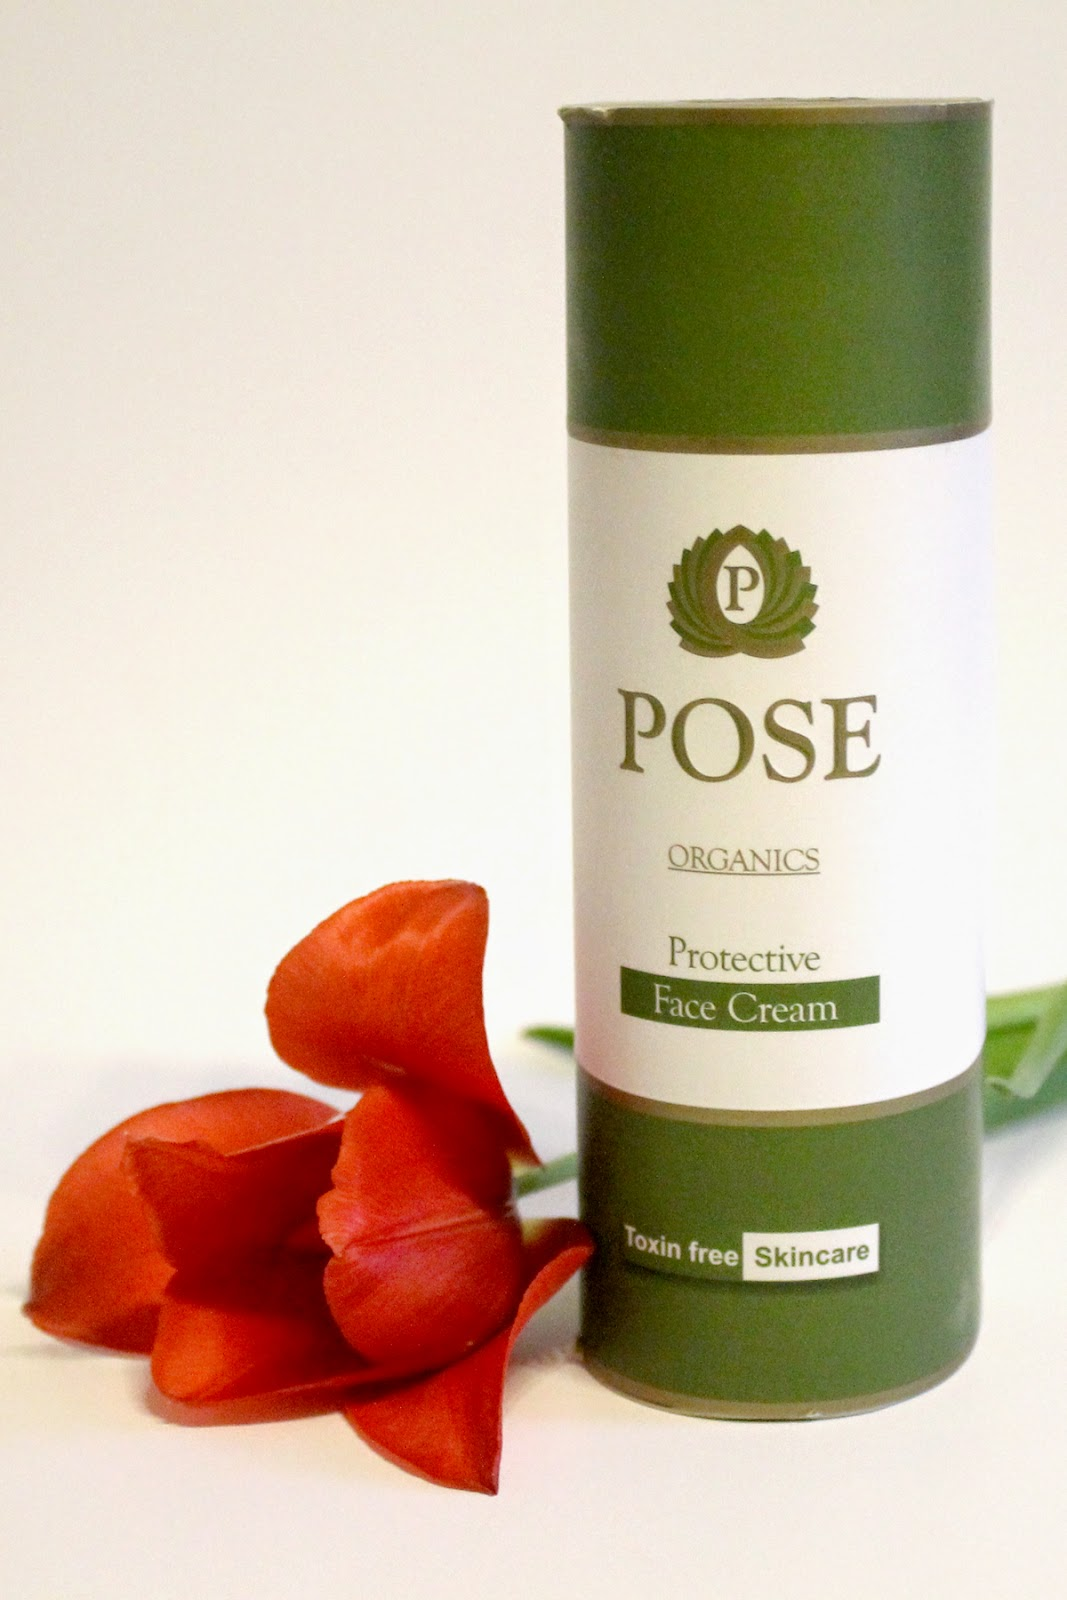 POSE protective face cream